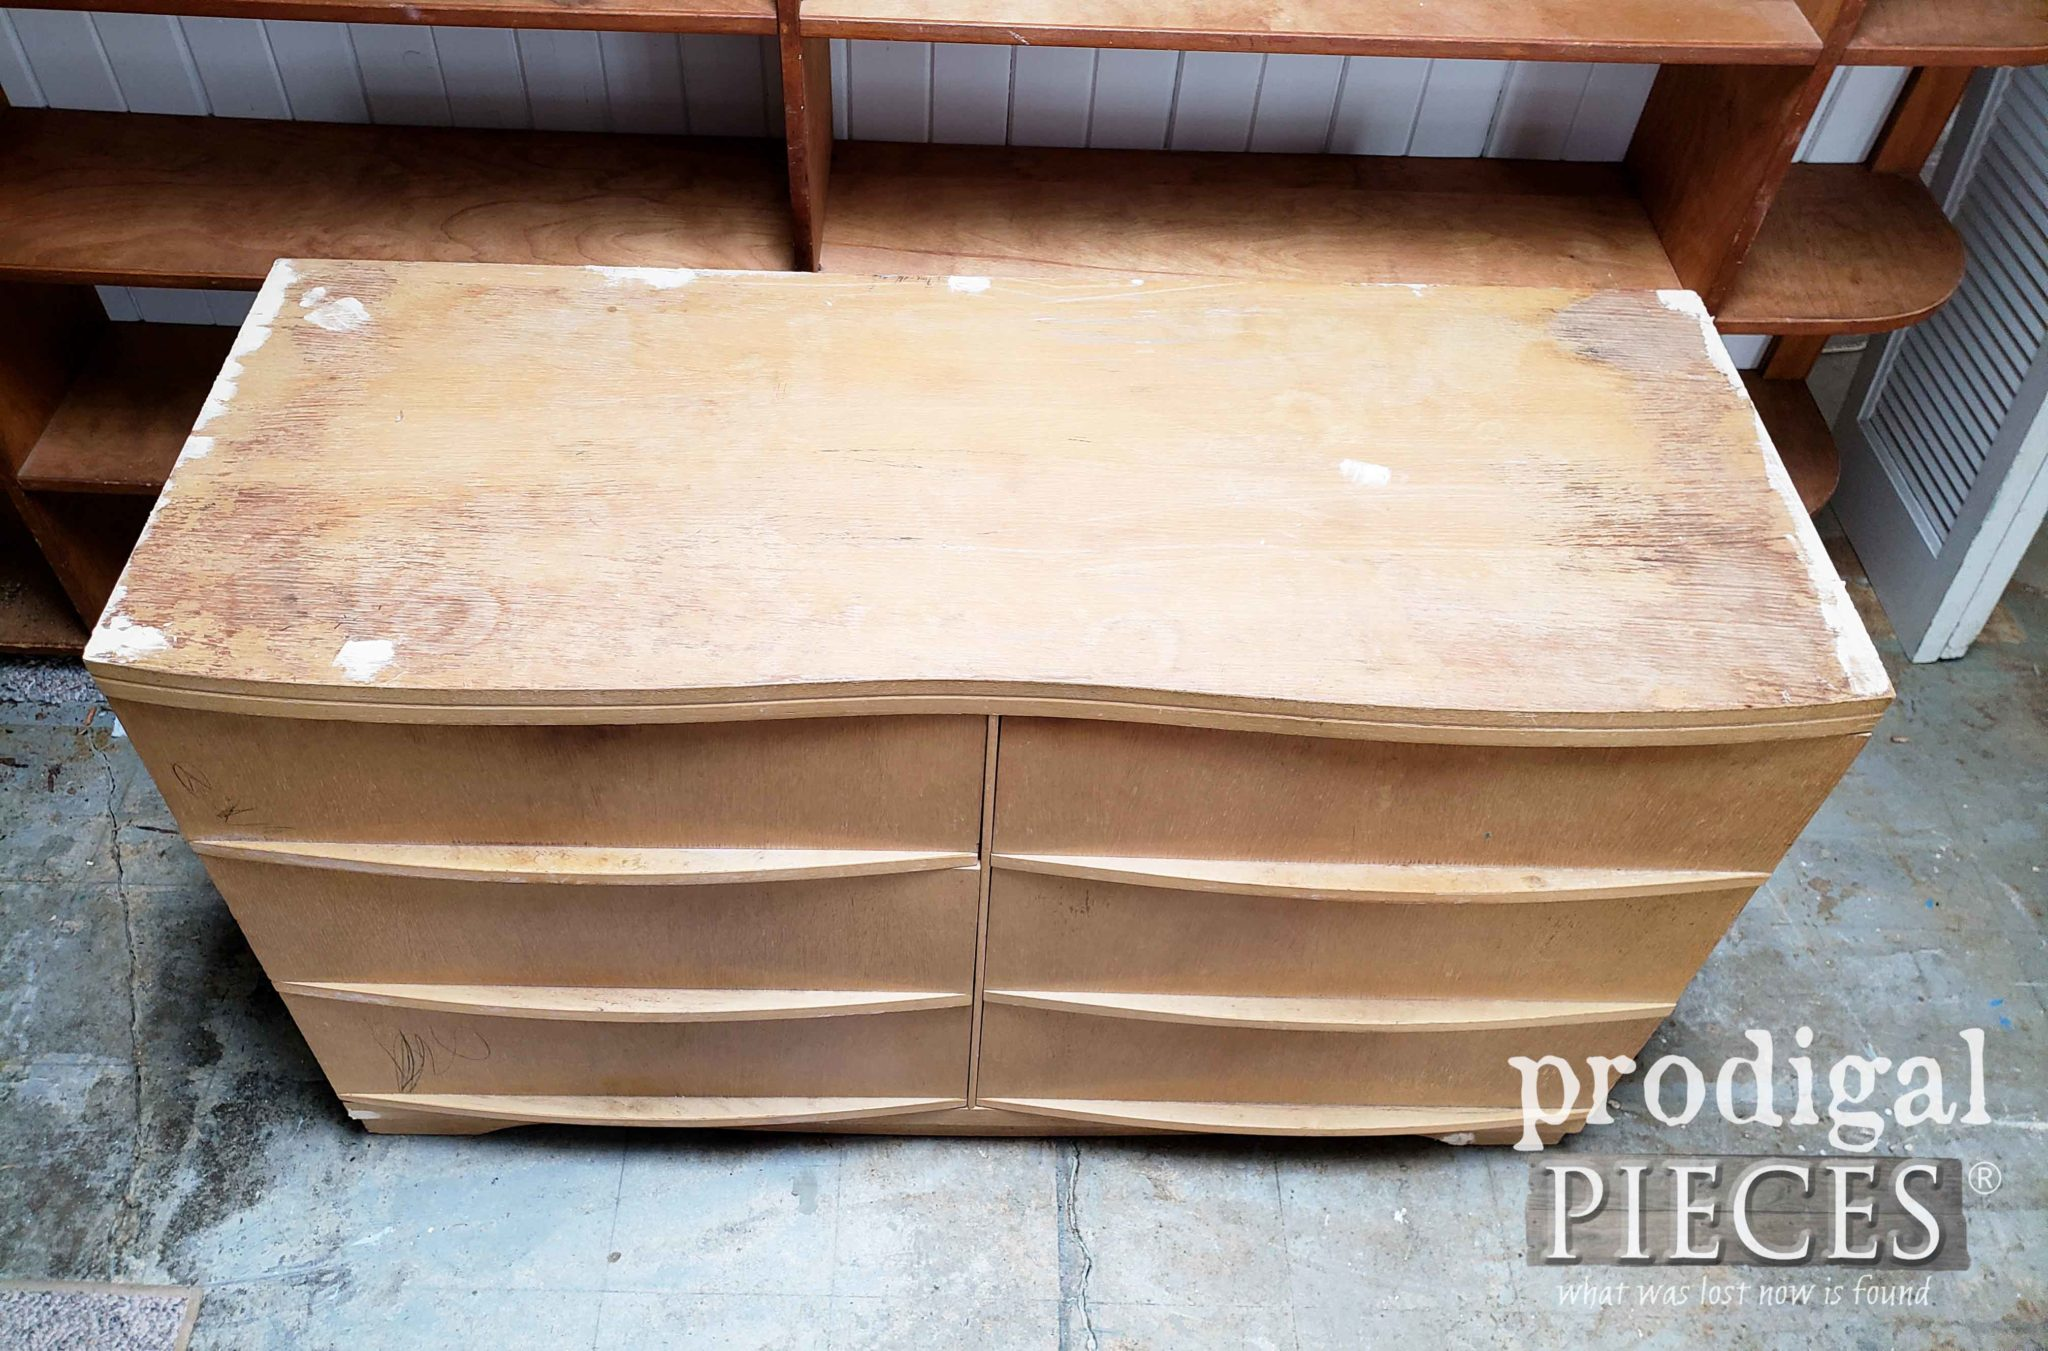 Dresser Top Repaired with Wood Filler | prodigalpieces.com